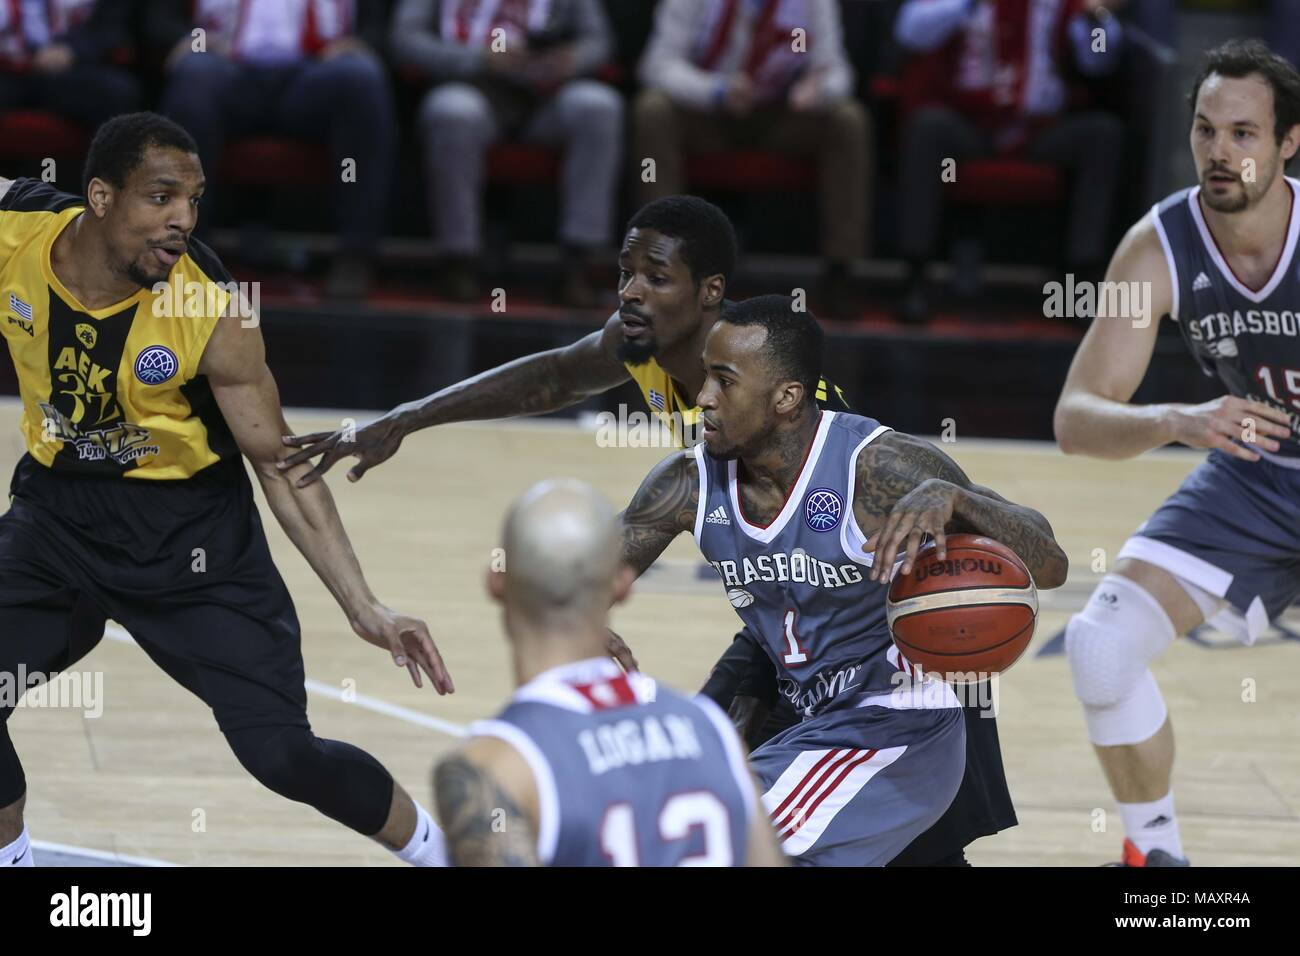 Strasbourg, France. 4th Apr, 2018. Dee Bost from SIG Strasbourg seen during the Basketball Champions League match between SIG Strasbourg and AEK. Credit: Elyxandro Cegarra/SOPA Images/ZUMA Wire/Alamy Live News - Stock Image